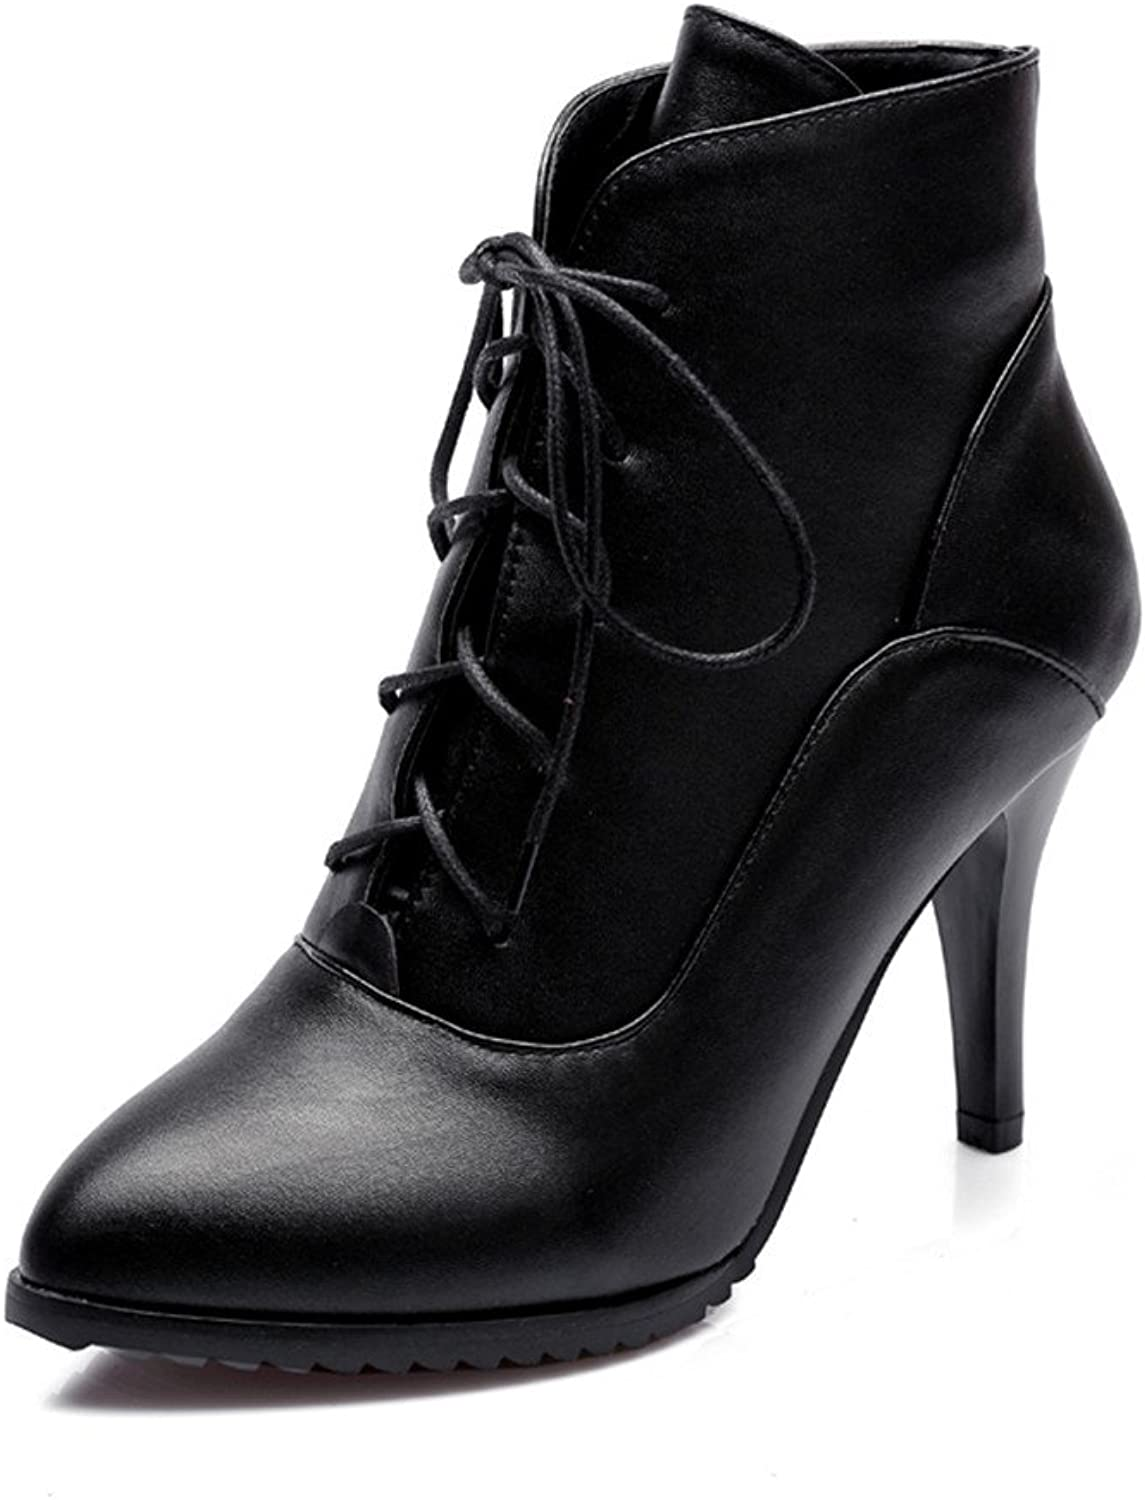 Fashion Heel Womens Stiletto Heel Pointed Toe Handmade Dress Ankle Boot